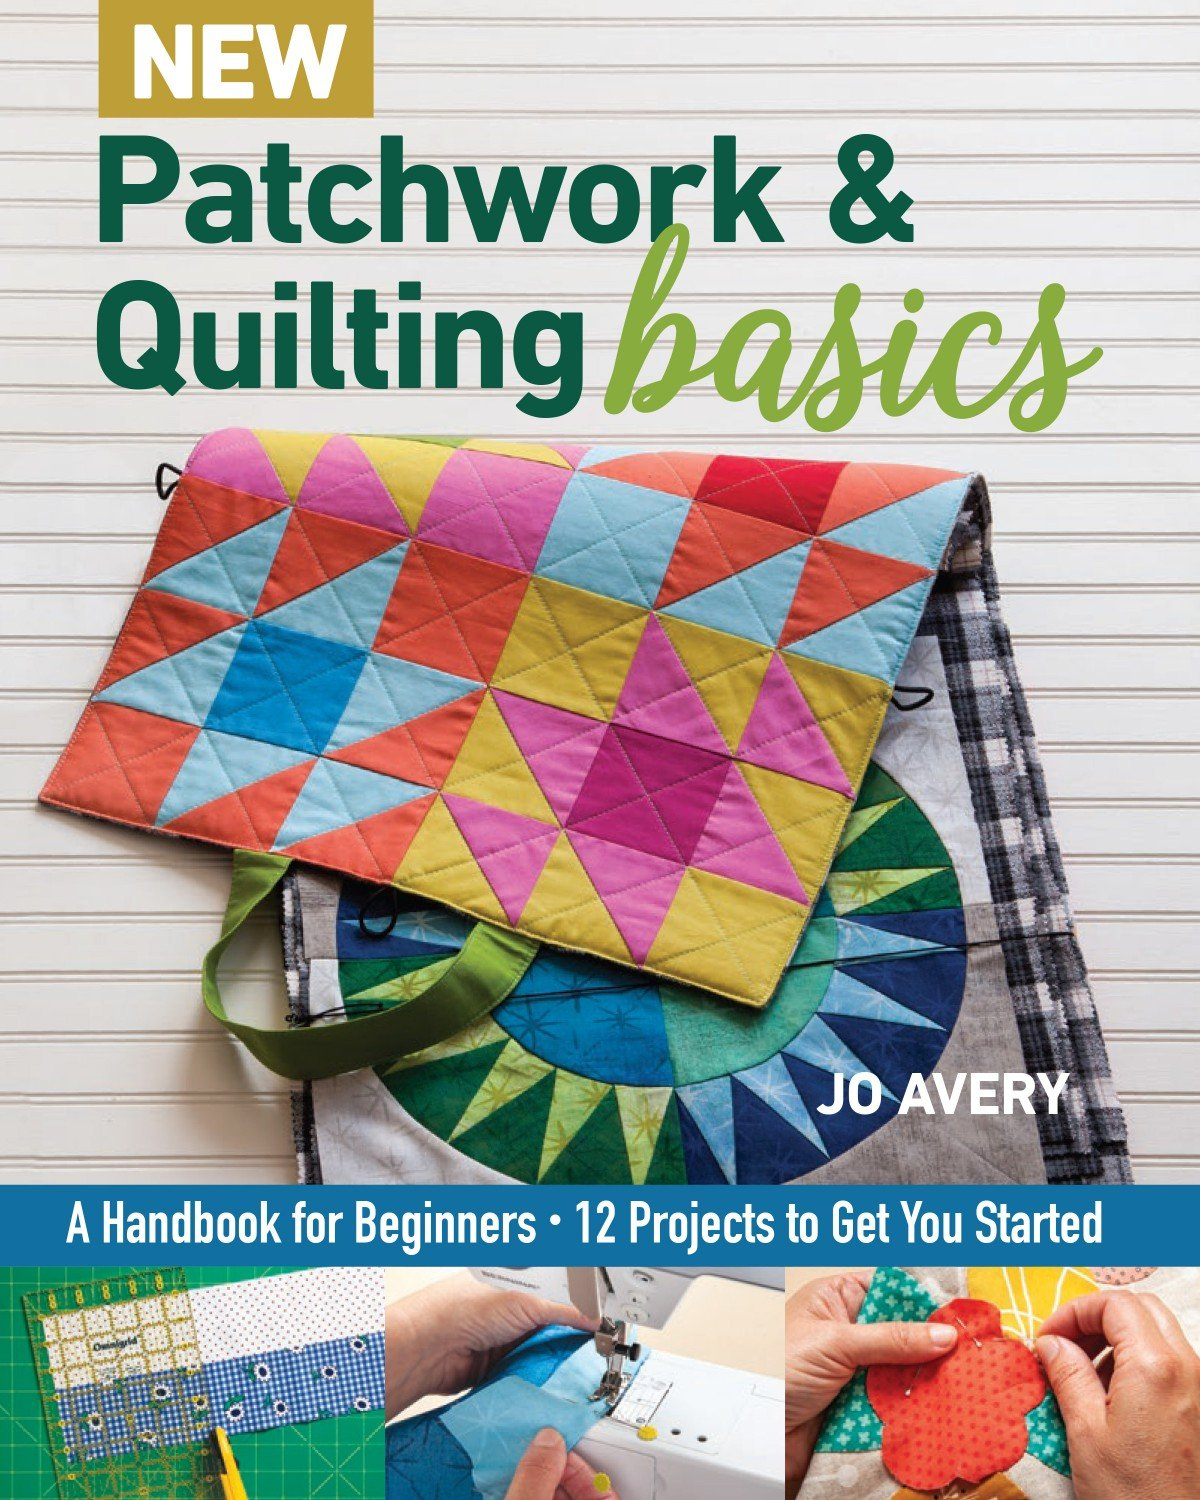 New Patchwork & Quilt Basics